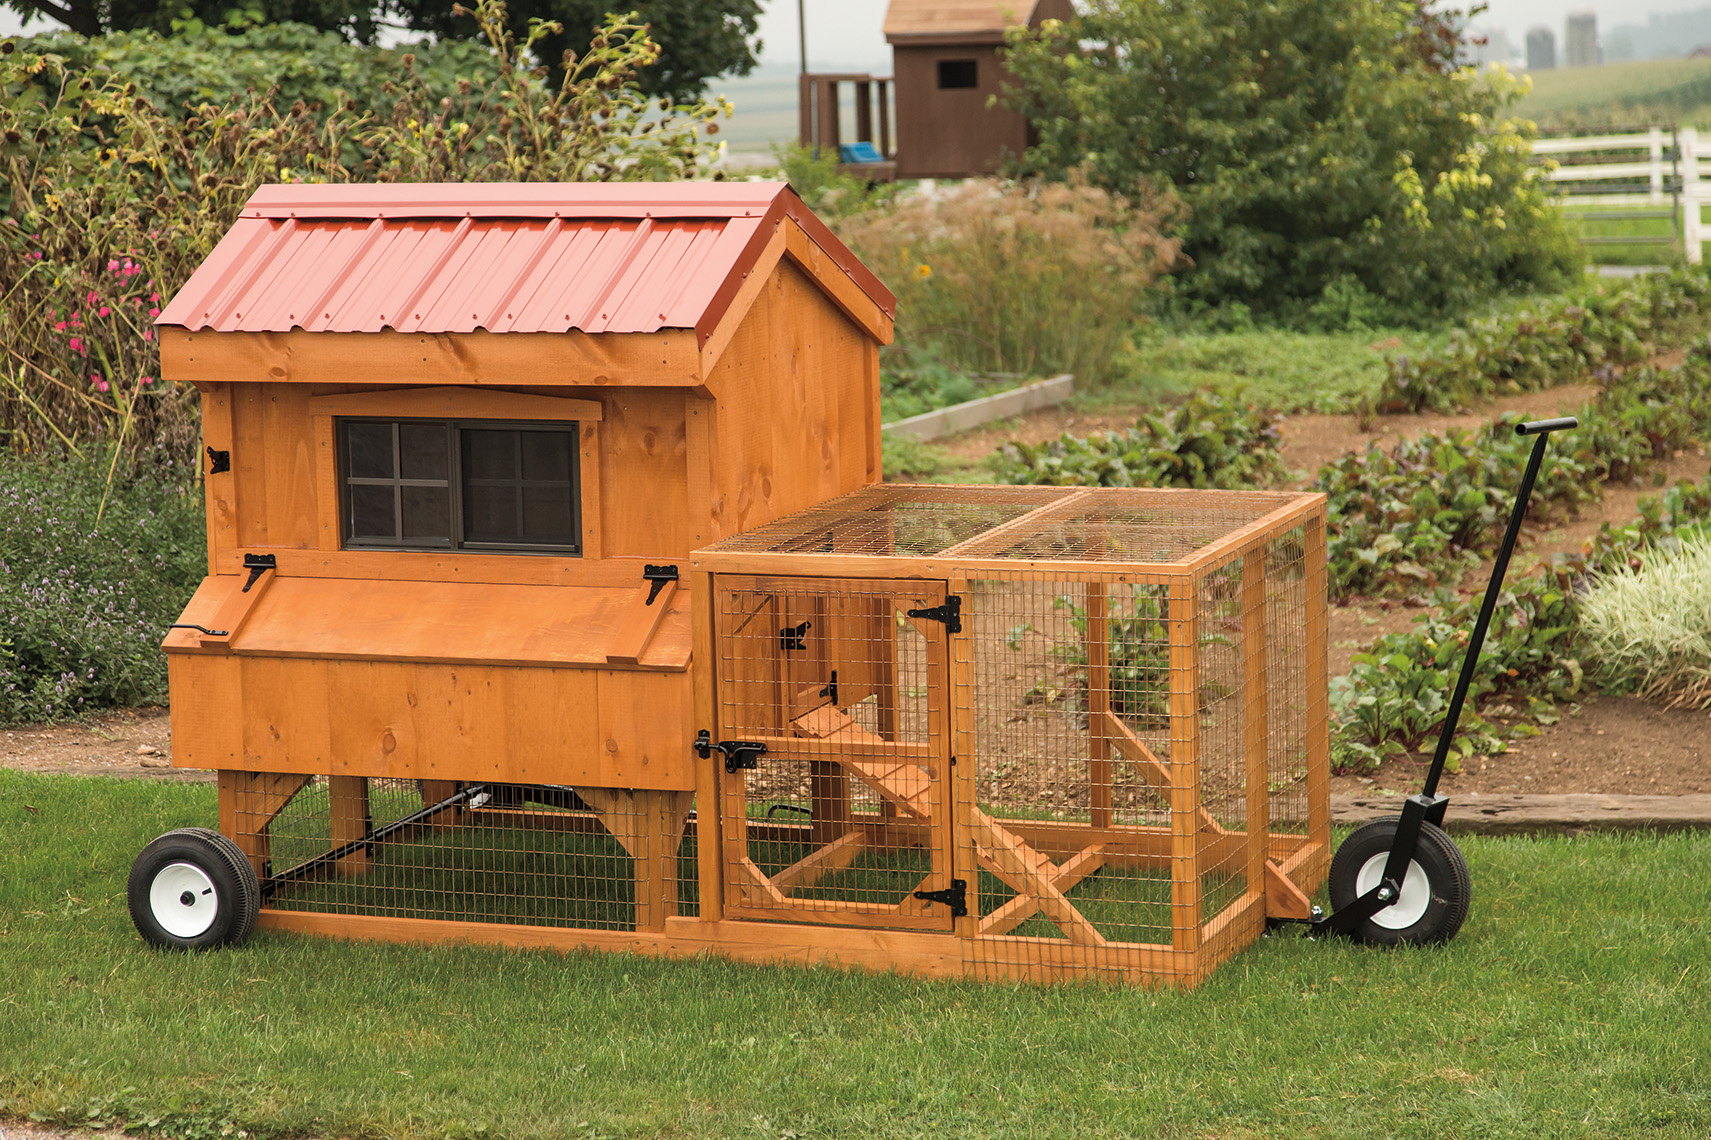 Backyard Chicken Coop Kit 3×4 combination style chicken coop kit w/ 4×4 run | backyard escapes